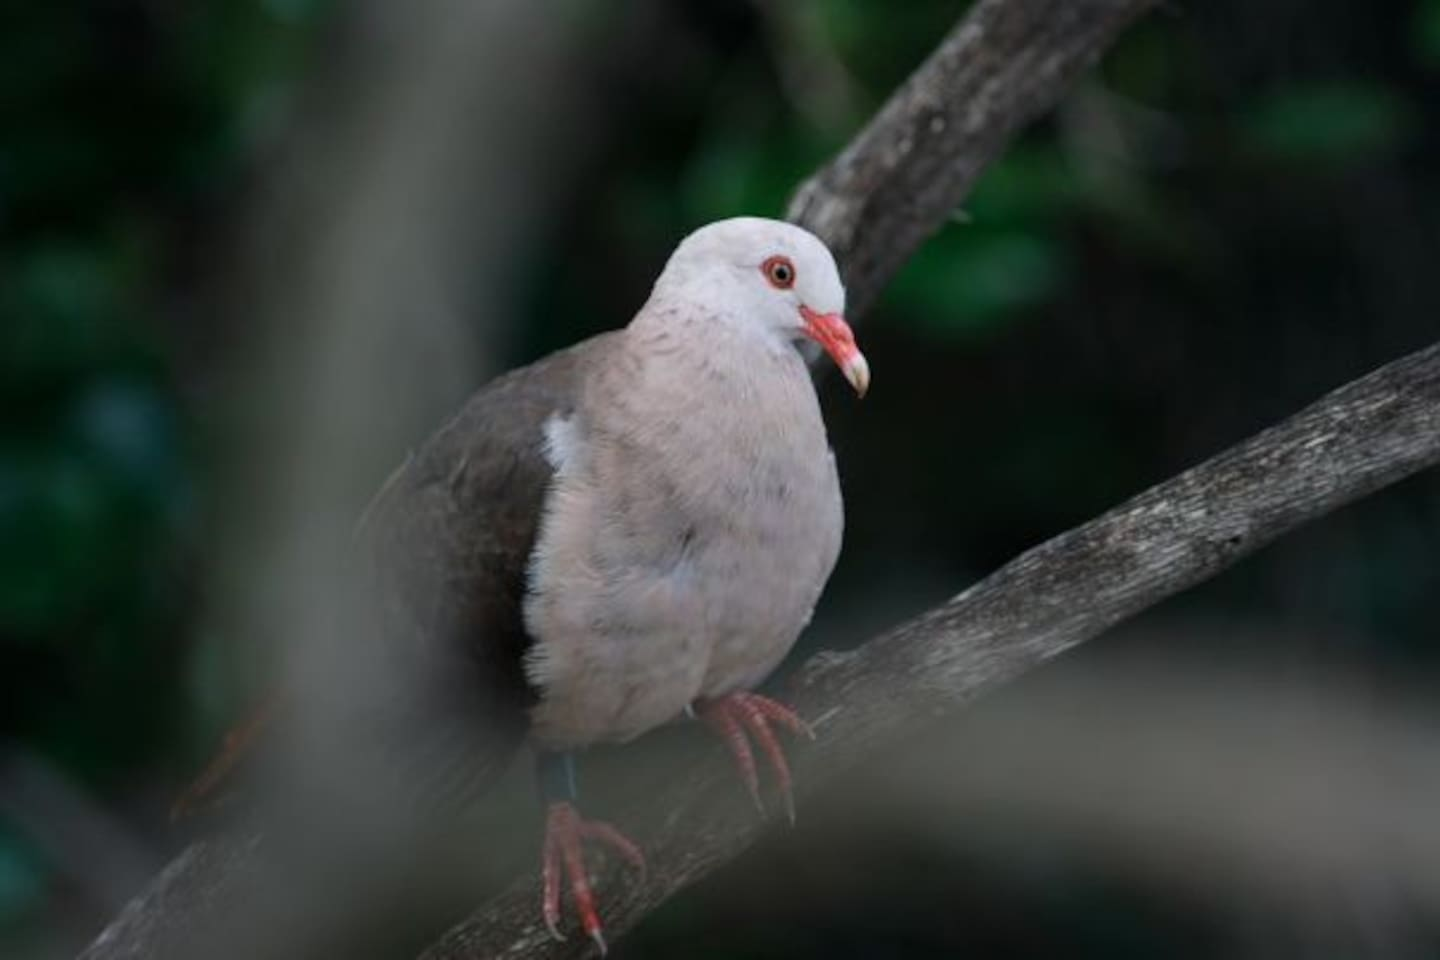 The pink pigeon (Nesoenas mayeri) is a species of pigeon in the family Columbidae endemic to Mauritius. The pink pigeons became nearly extinct in the 1990s and is still very rare. It is the only Mascarene pigeon that has not gone extinct. It was on the brink of extinction in 1991 when only 10 individuals remained, but its numbers have increased due to the efforts of the Durrell Wildlife Conservation Trust since 1977